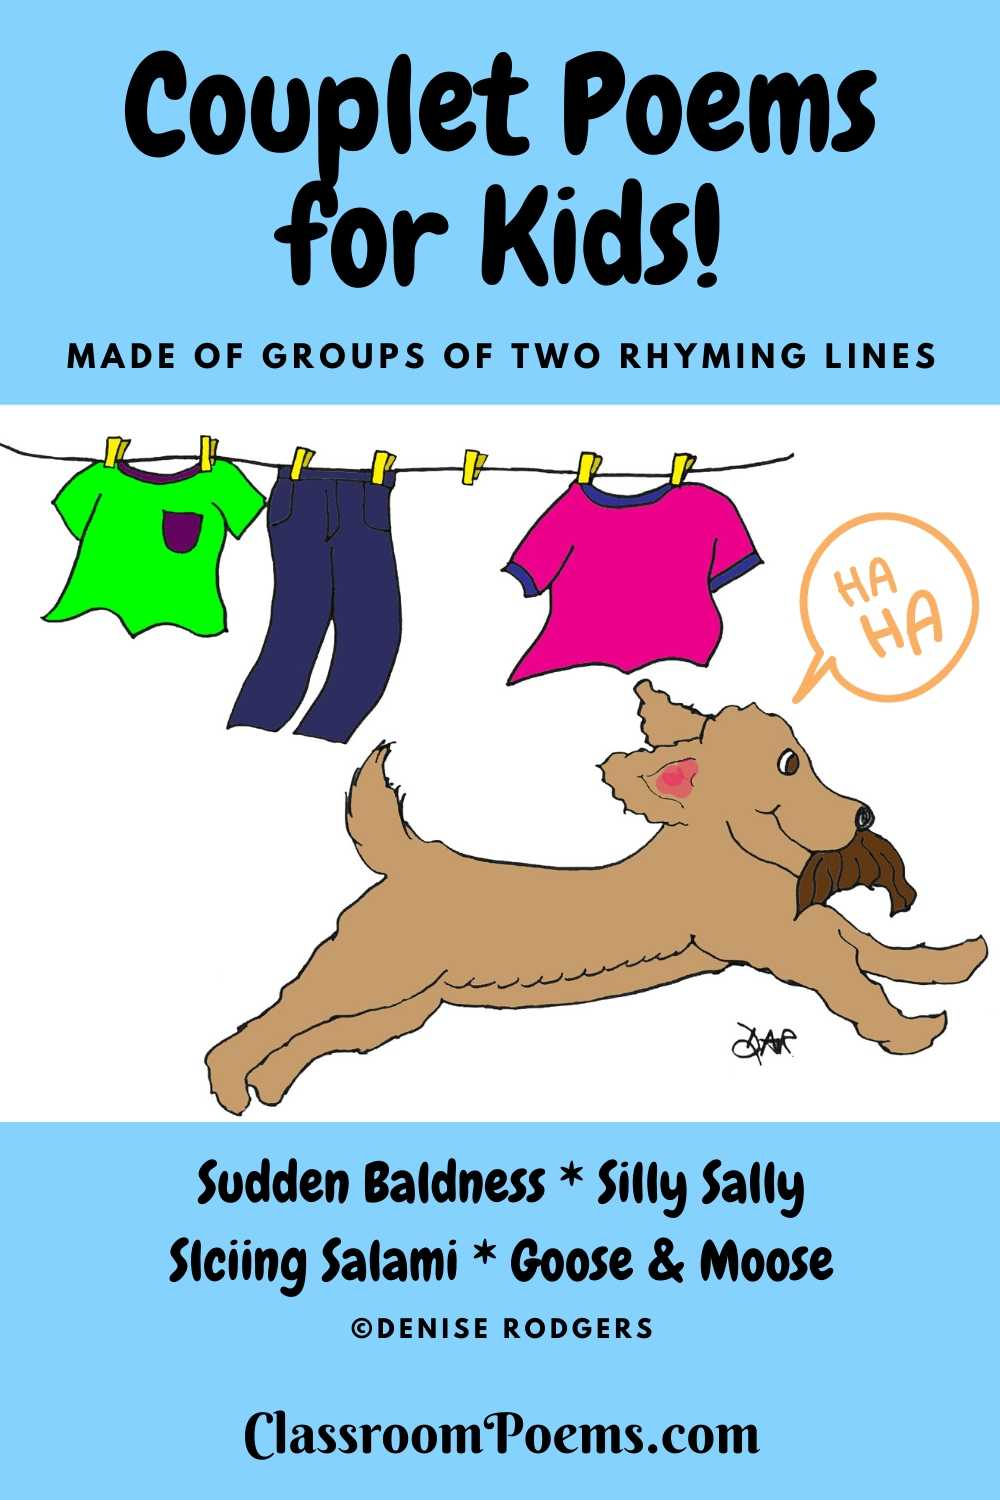 SUDDEN BALDNESS couplet poem by Denise Rodgers on ClassroomPoems.com.